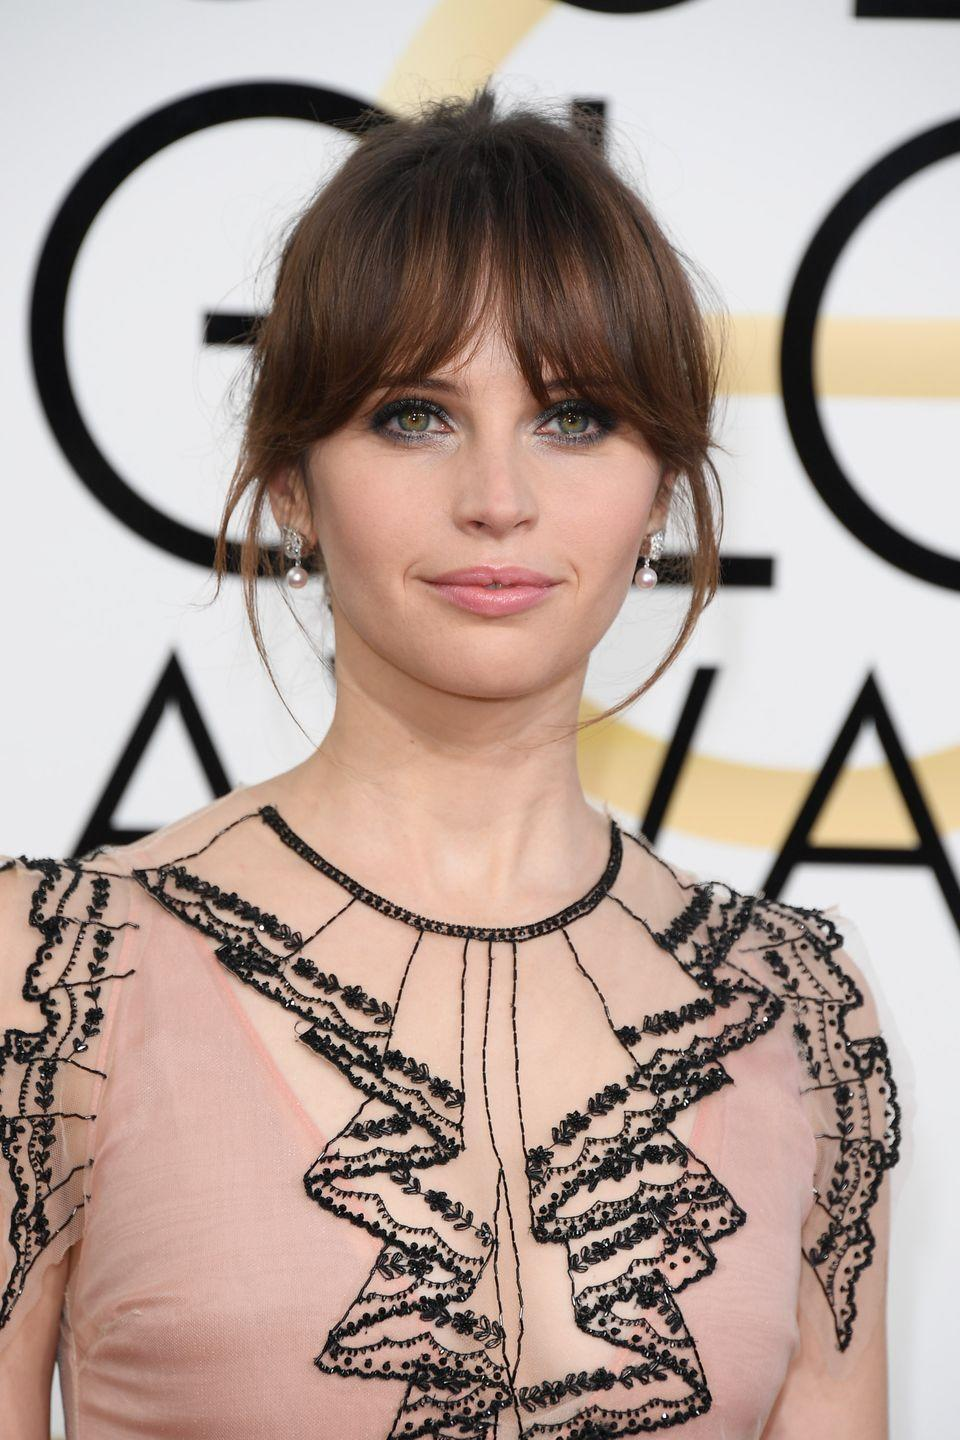 """<p>A set of smooth, blown-out bangs adds instant drama to a <a href=""""https://www.goodhousekeeping.com/beauty/hair/tips/g1800/celebrity-hairstyles-updo/"""" rel=""""nofollow noopener"""" target=""""_blank"""" data-ylk=""""slk:classic updo"""" class=""""link rapid-noclick-resp"""">classic updo</a>. If you aren't going for the regal look, pull out a few strands around the hairline for a wispy effect. </p>"""